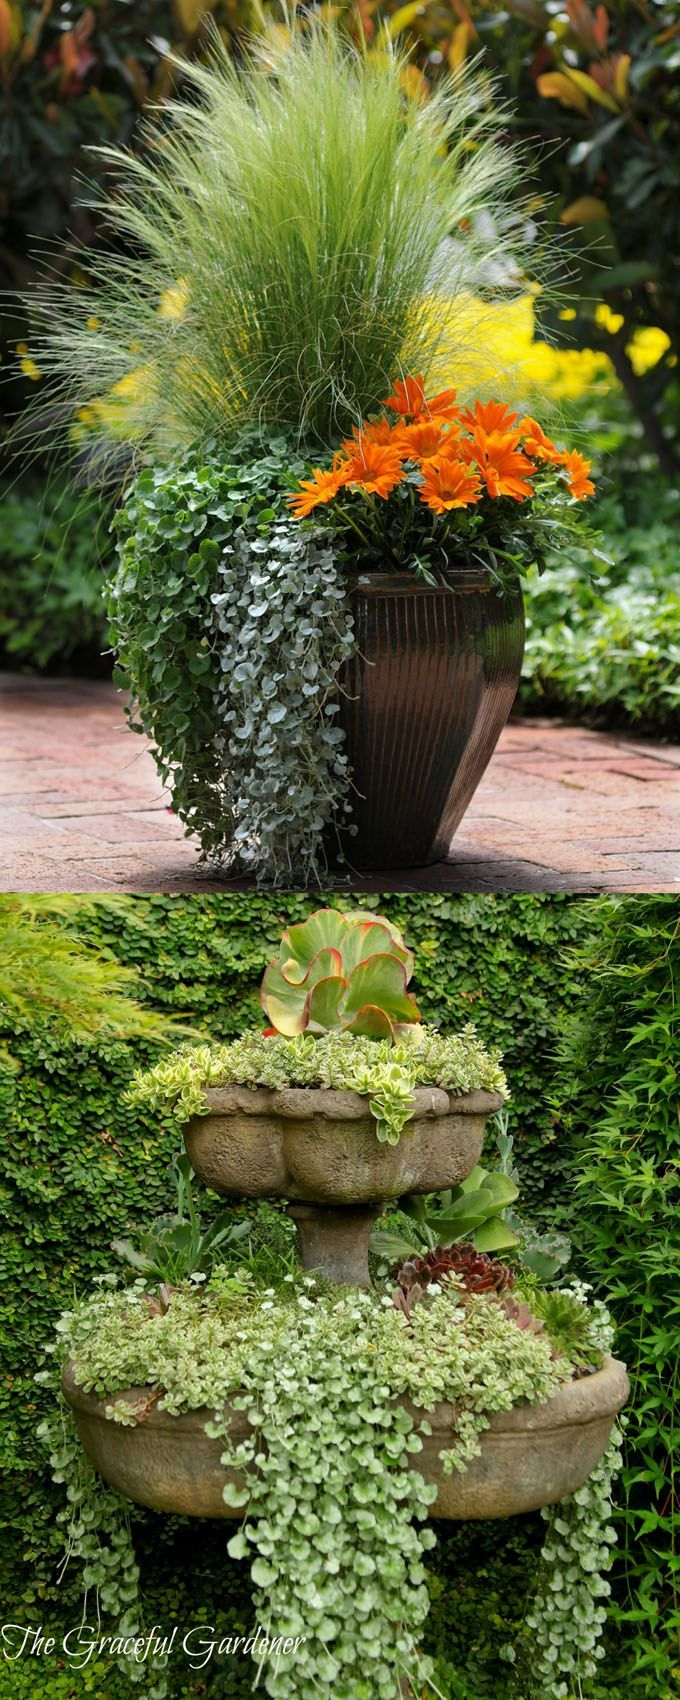 3234 best Garden Drama images on Pinterest | Landscaping, Garden ...